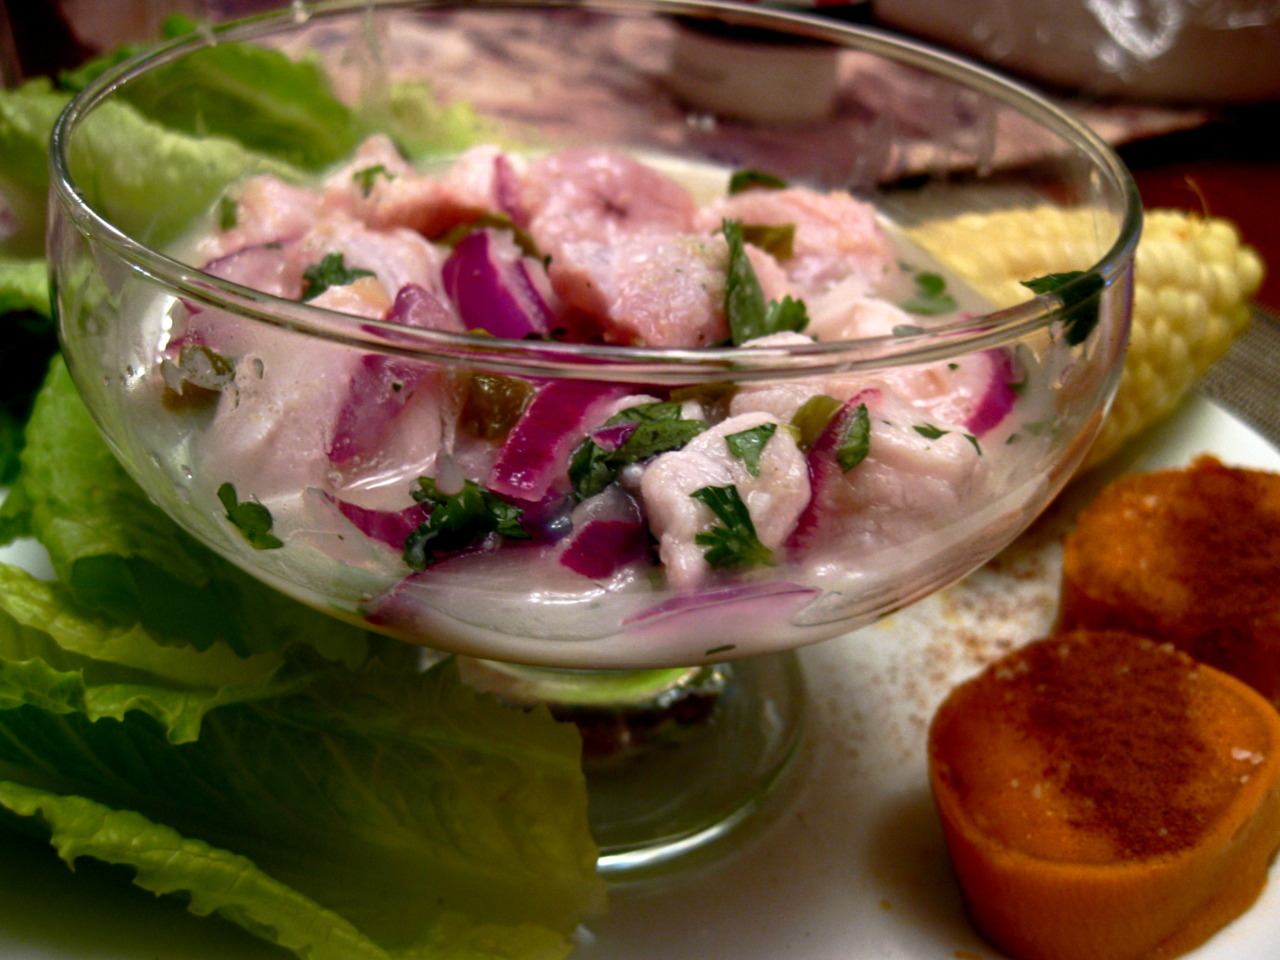 Dinner this evening: Peruvian Ceviche with Sweet Potato, Corn and Romaine This is the most incredible dish especially when served with some lovely fresh basa-swai fillets (which I purchased this afternoon at the 99 Ranch Market) and gorgeous freshly squeezed limes. My other adaptations included a bit of garlic parsley salt and I used serrano and jalapeno chili peppers instead of habanero (since I didn't have any on hand.) I ate them like little lettuce tacos with a bit of corn and sweet potato wraped around the ceviche. They all pair so wonderfully together. Nomz nom nom nom.